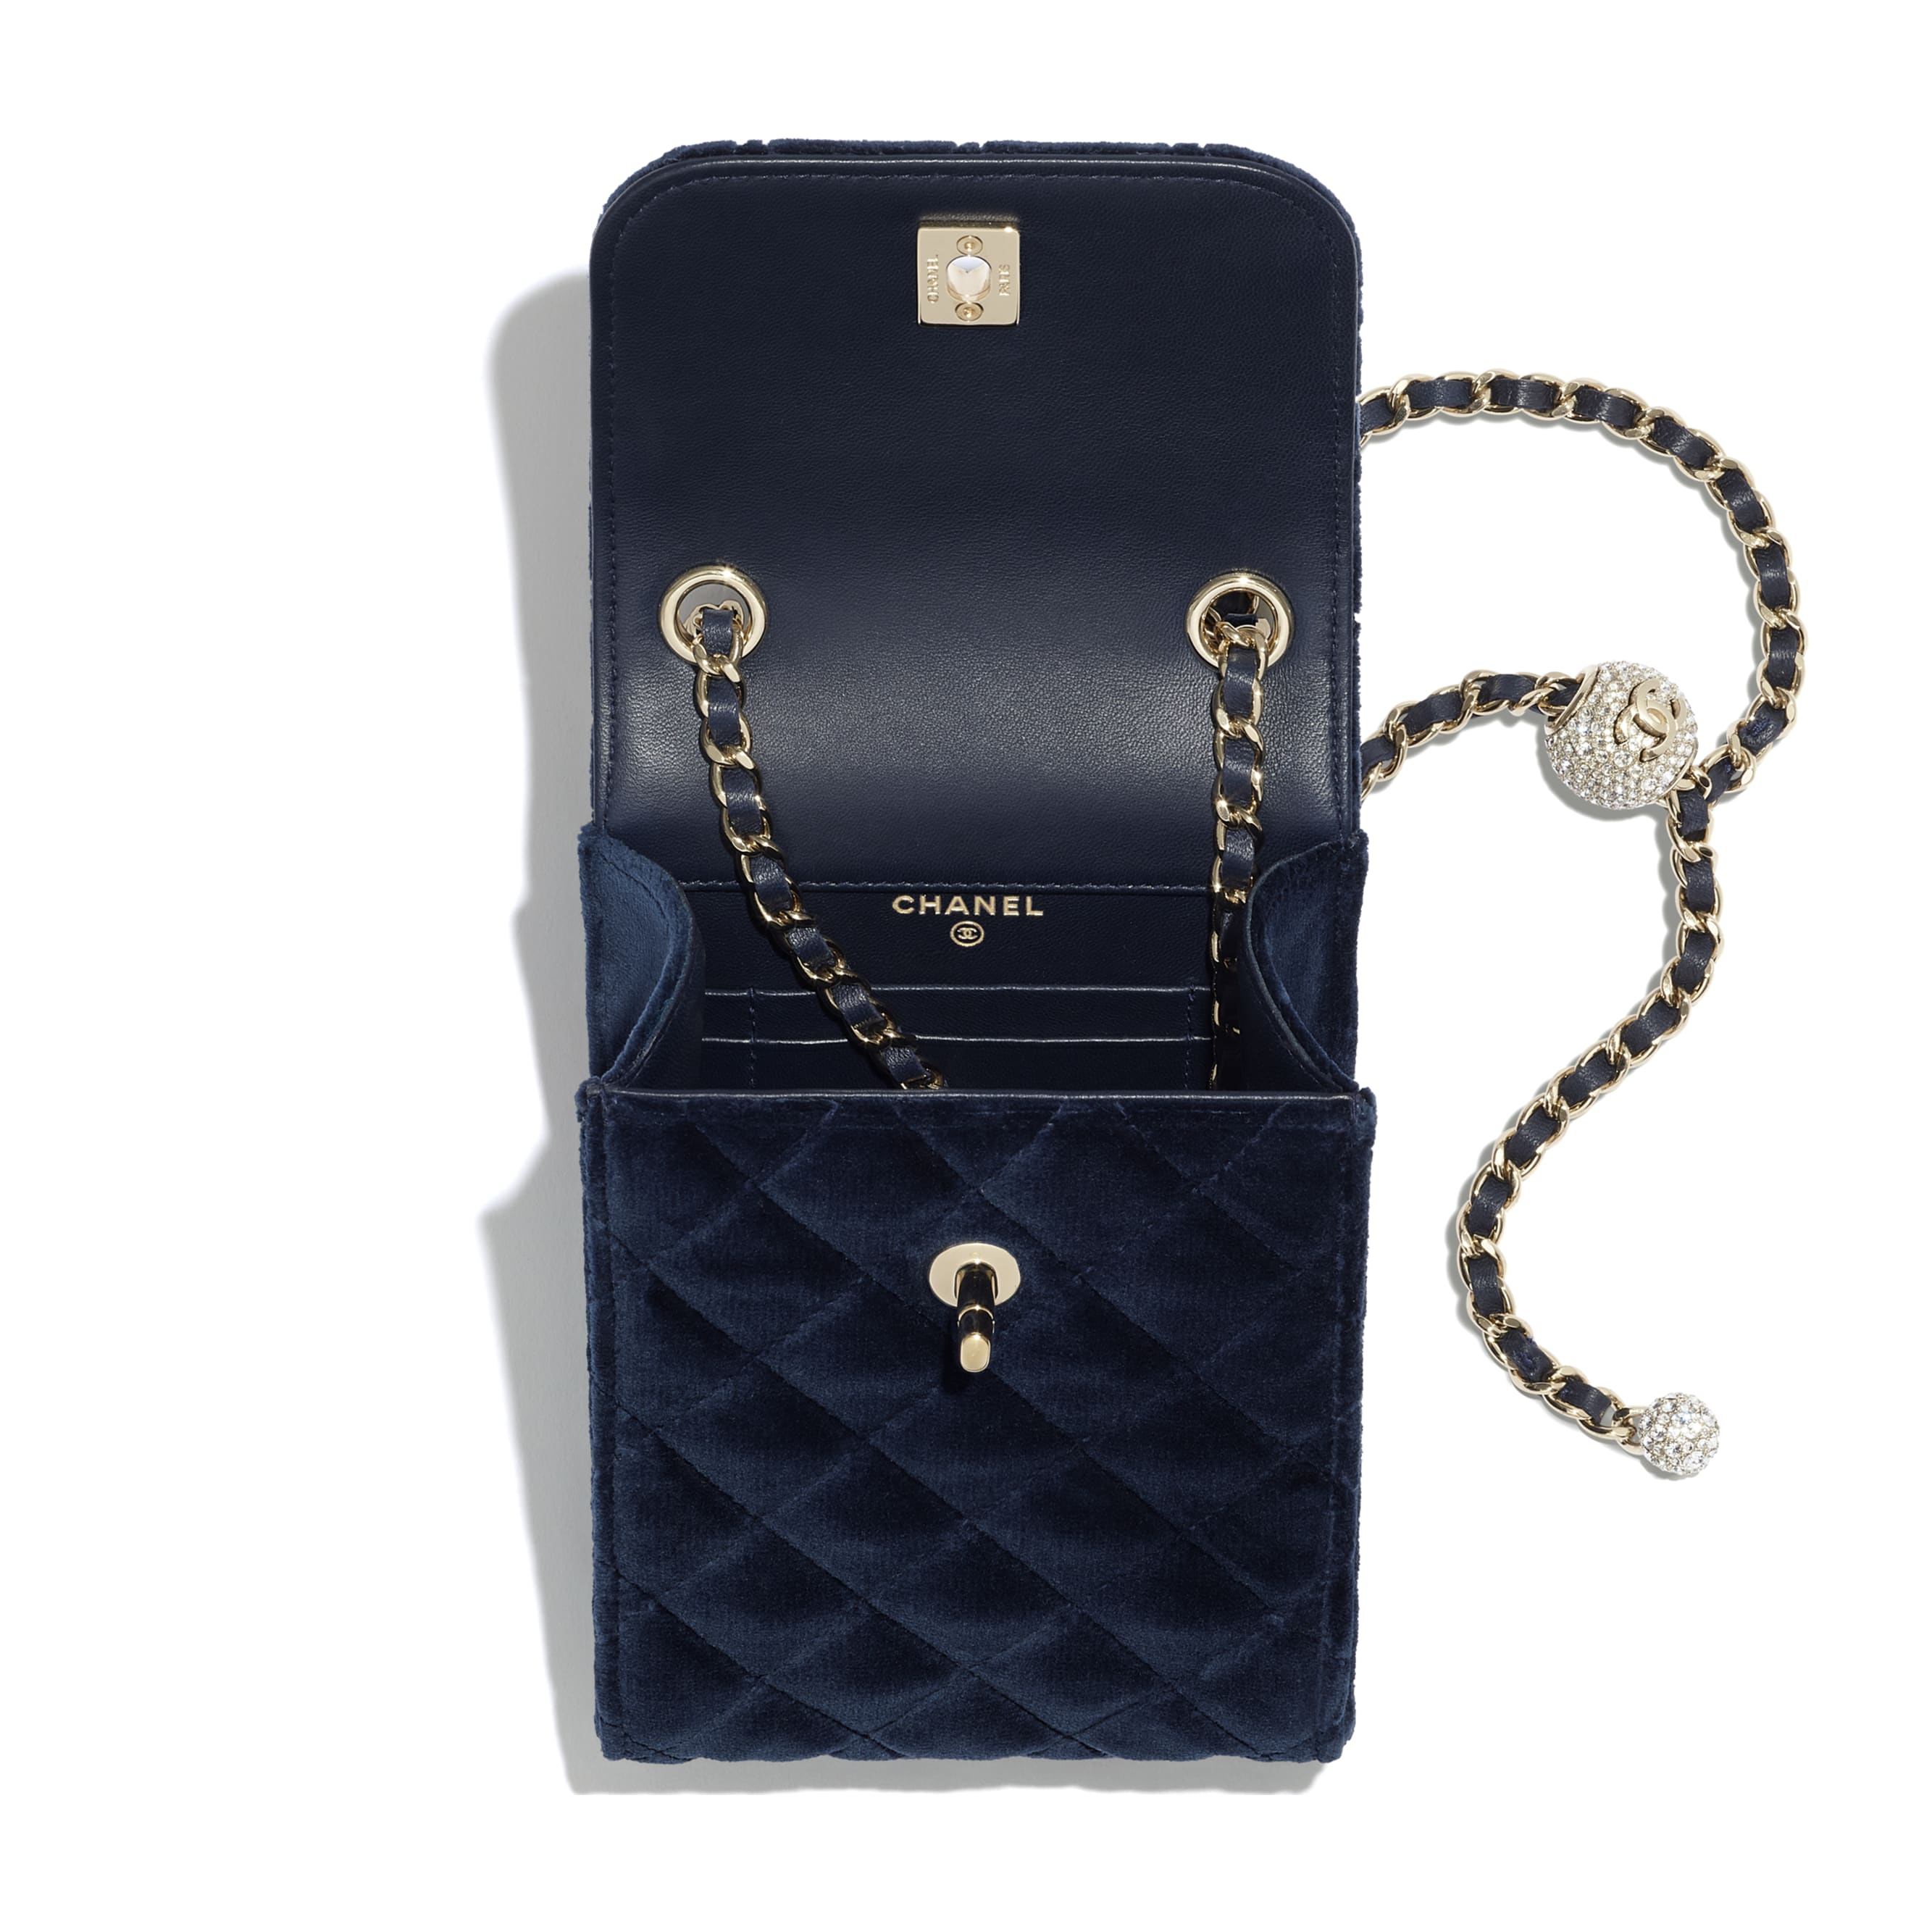 Phone Holder with Chain - Navy Blue - Velvet, Strass & Gold-Tone Metal - CHANEL - Alternative view - see standard sized version